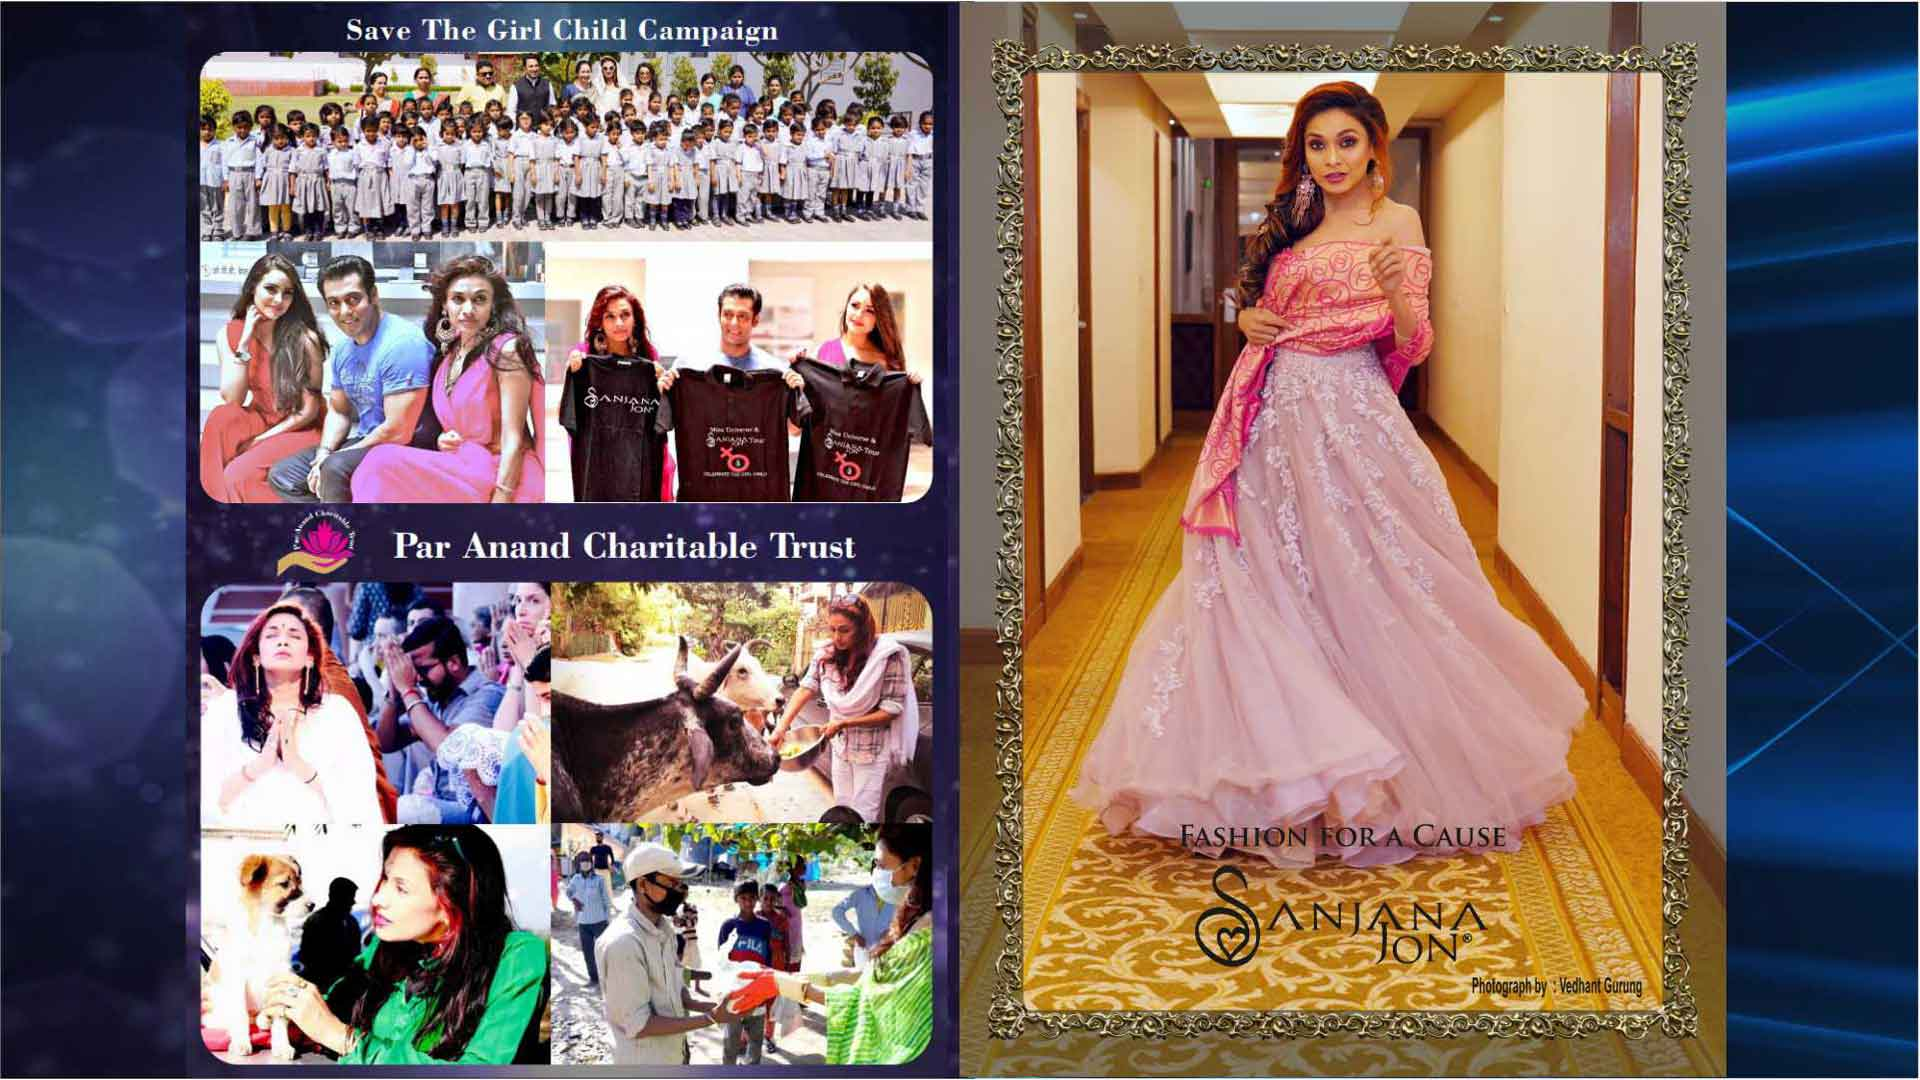 Charity and Fashion brochures